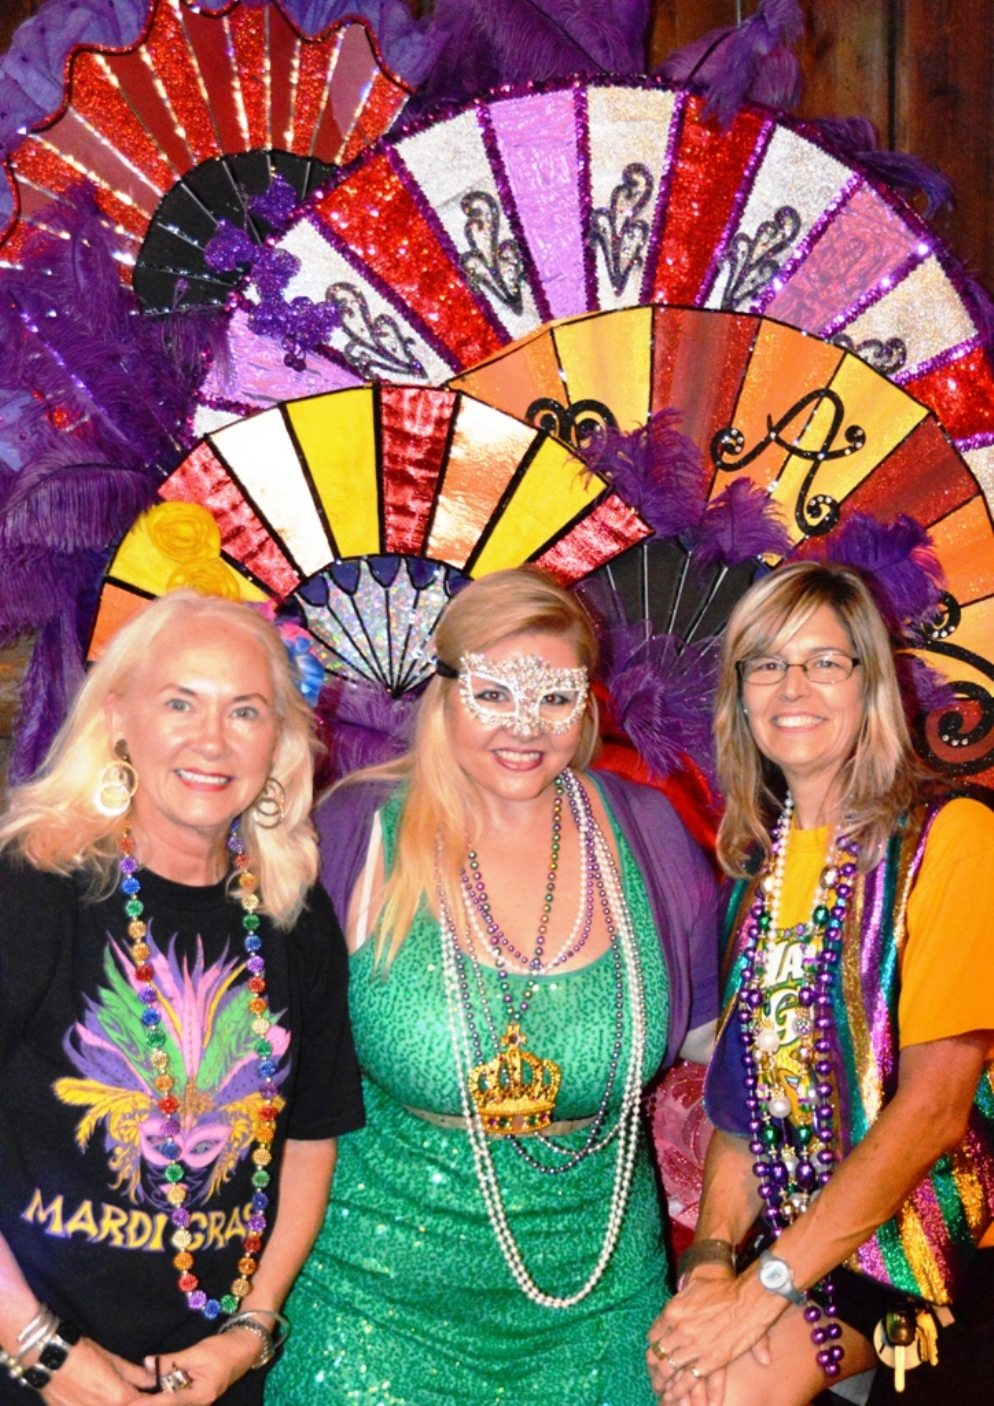 Special Events: Marti Gras at Riverview